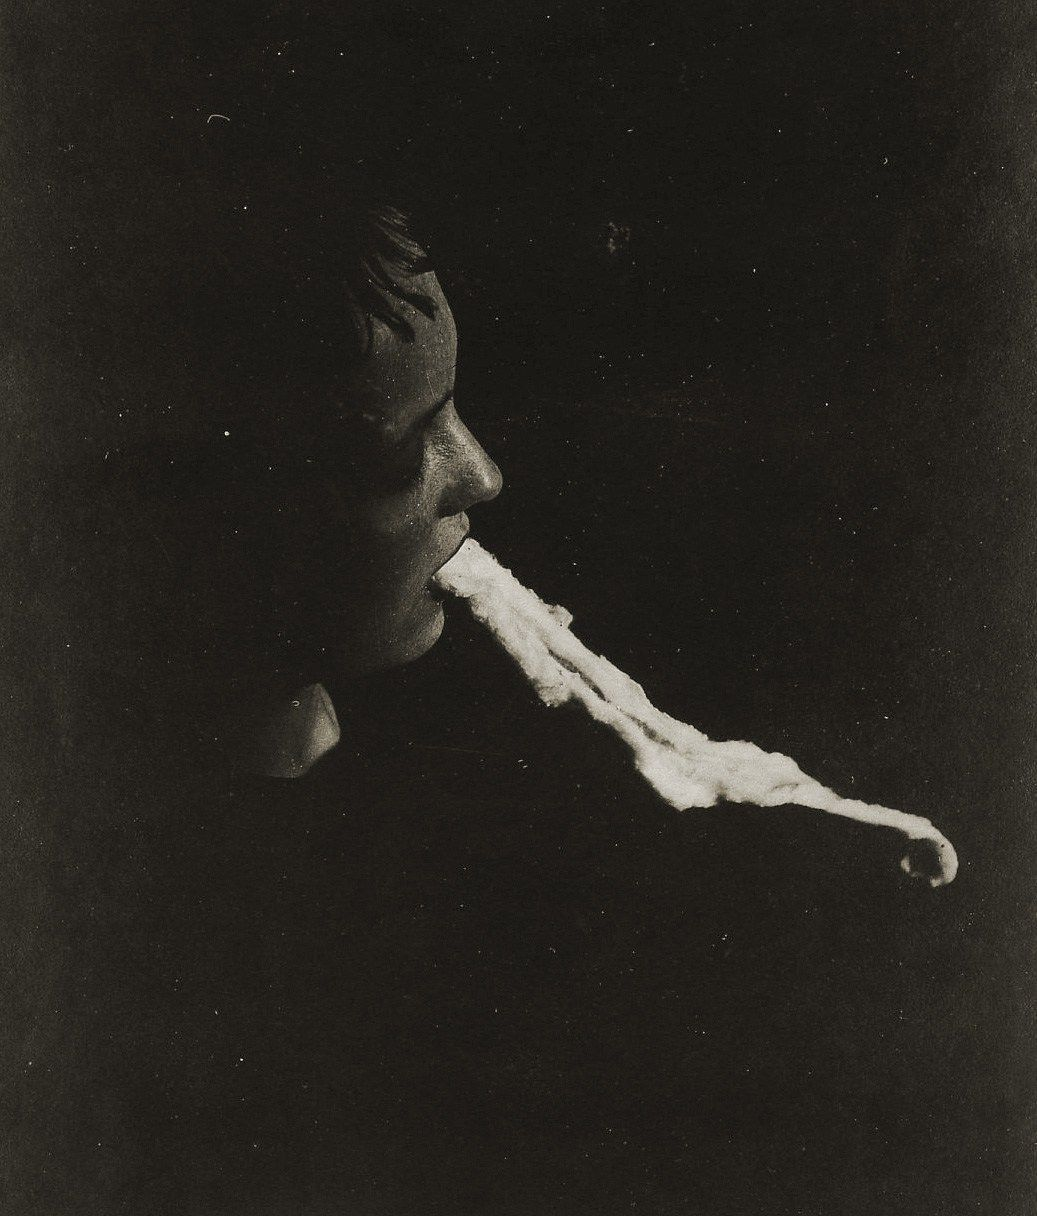 medium-Stanislawa-P.-emission-and-resorption-of-an-ectoplasmic-substance-through-the-mouth-1913